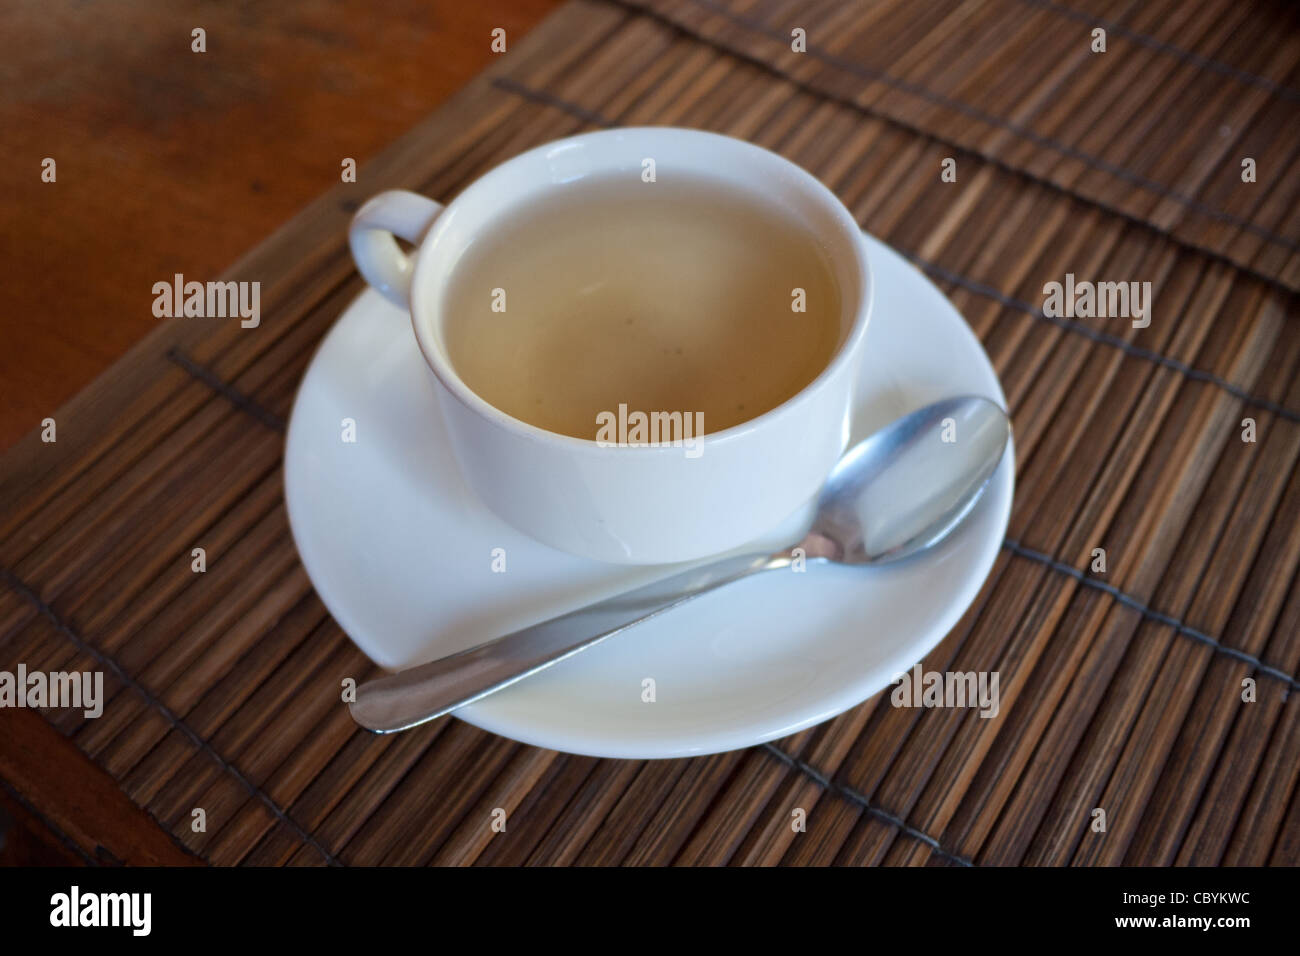 A cup of Laotian smoked green tea. - Stock Image